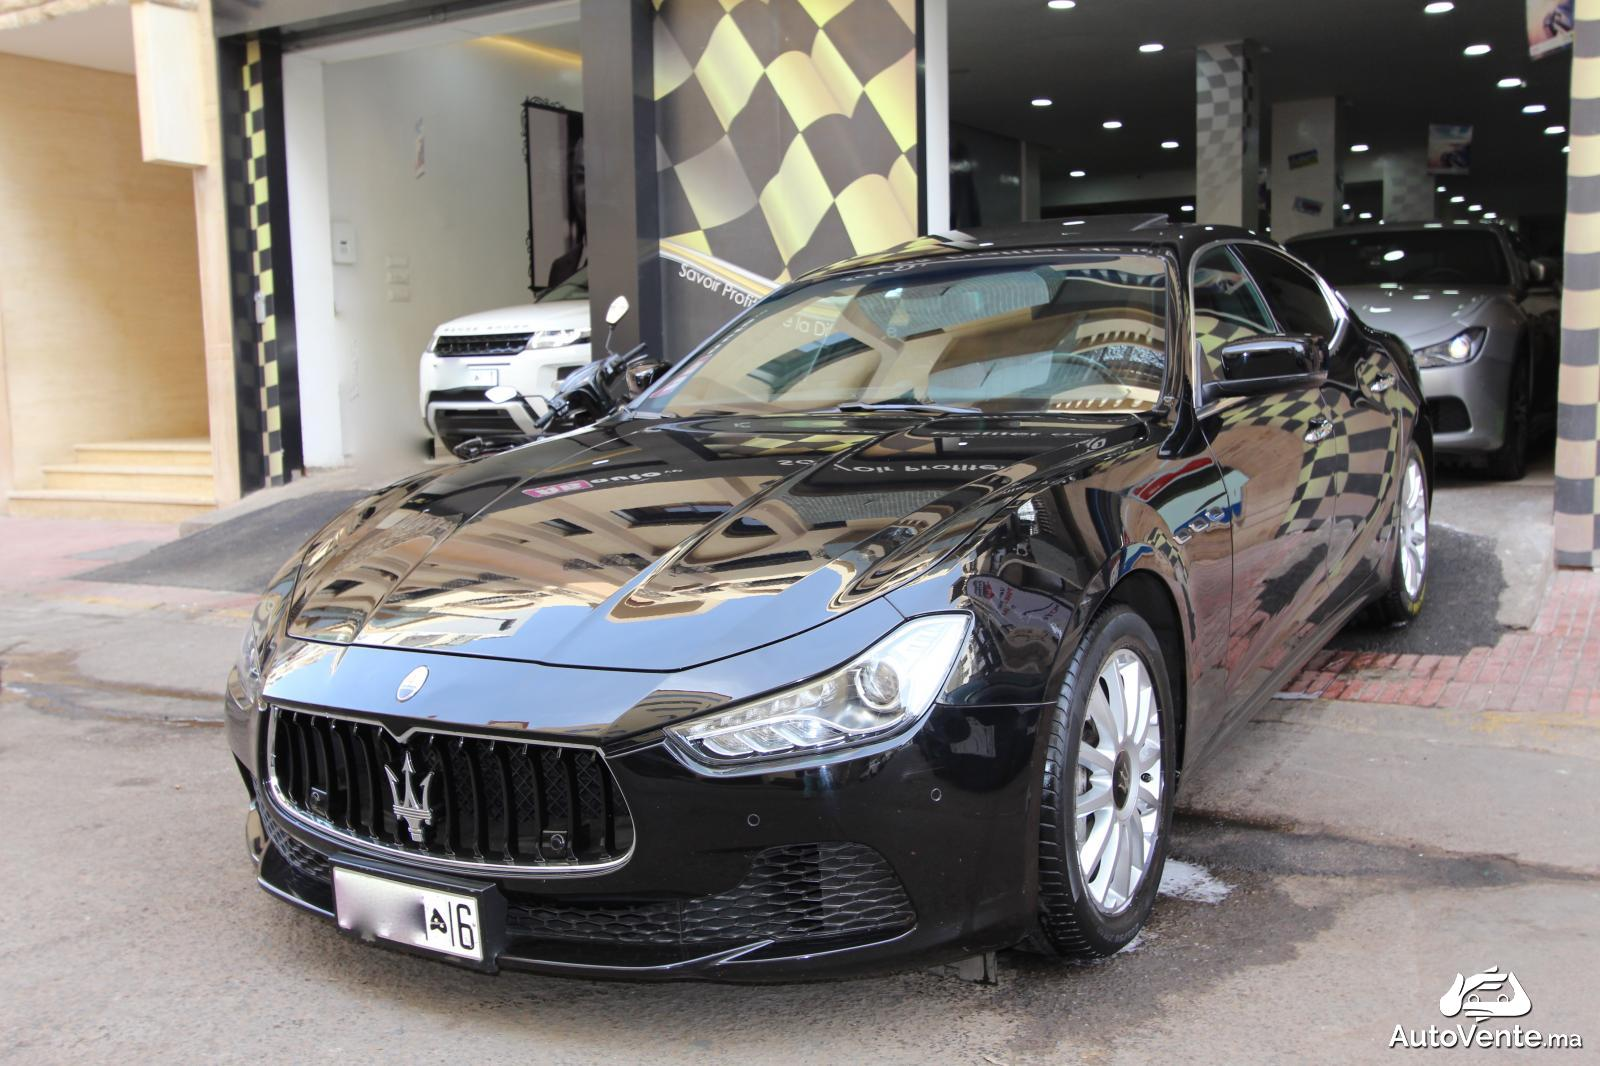 acheter maserati ghibli d 39 occasion a casablanca maroc autovente. Black Bedroom Furniture Sets. Home Design Ideas